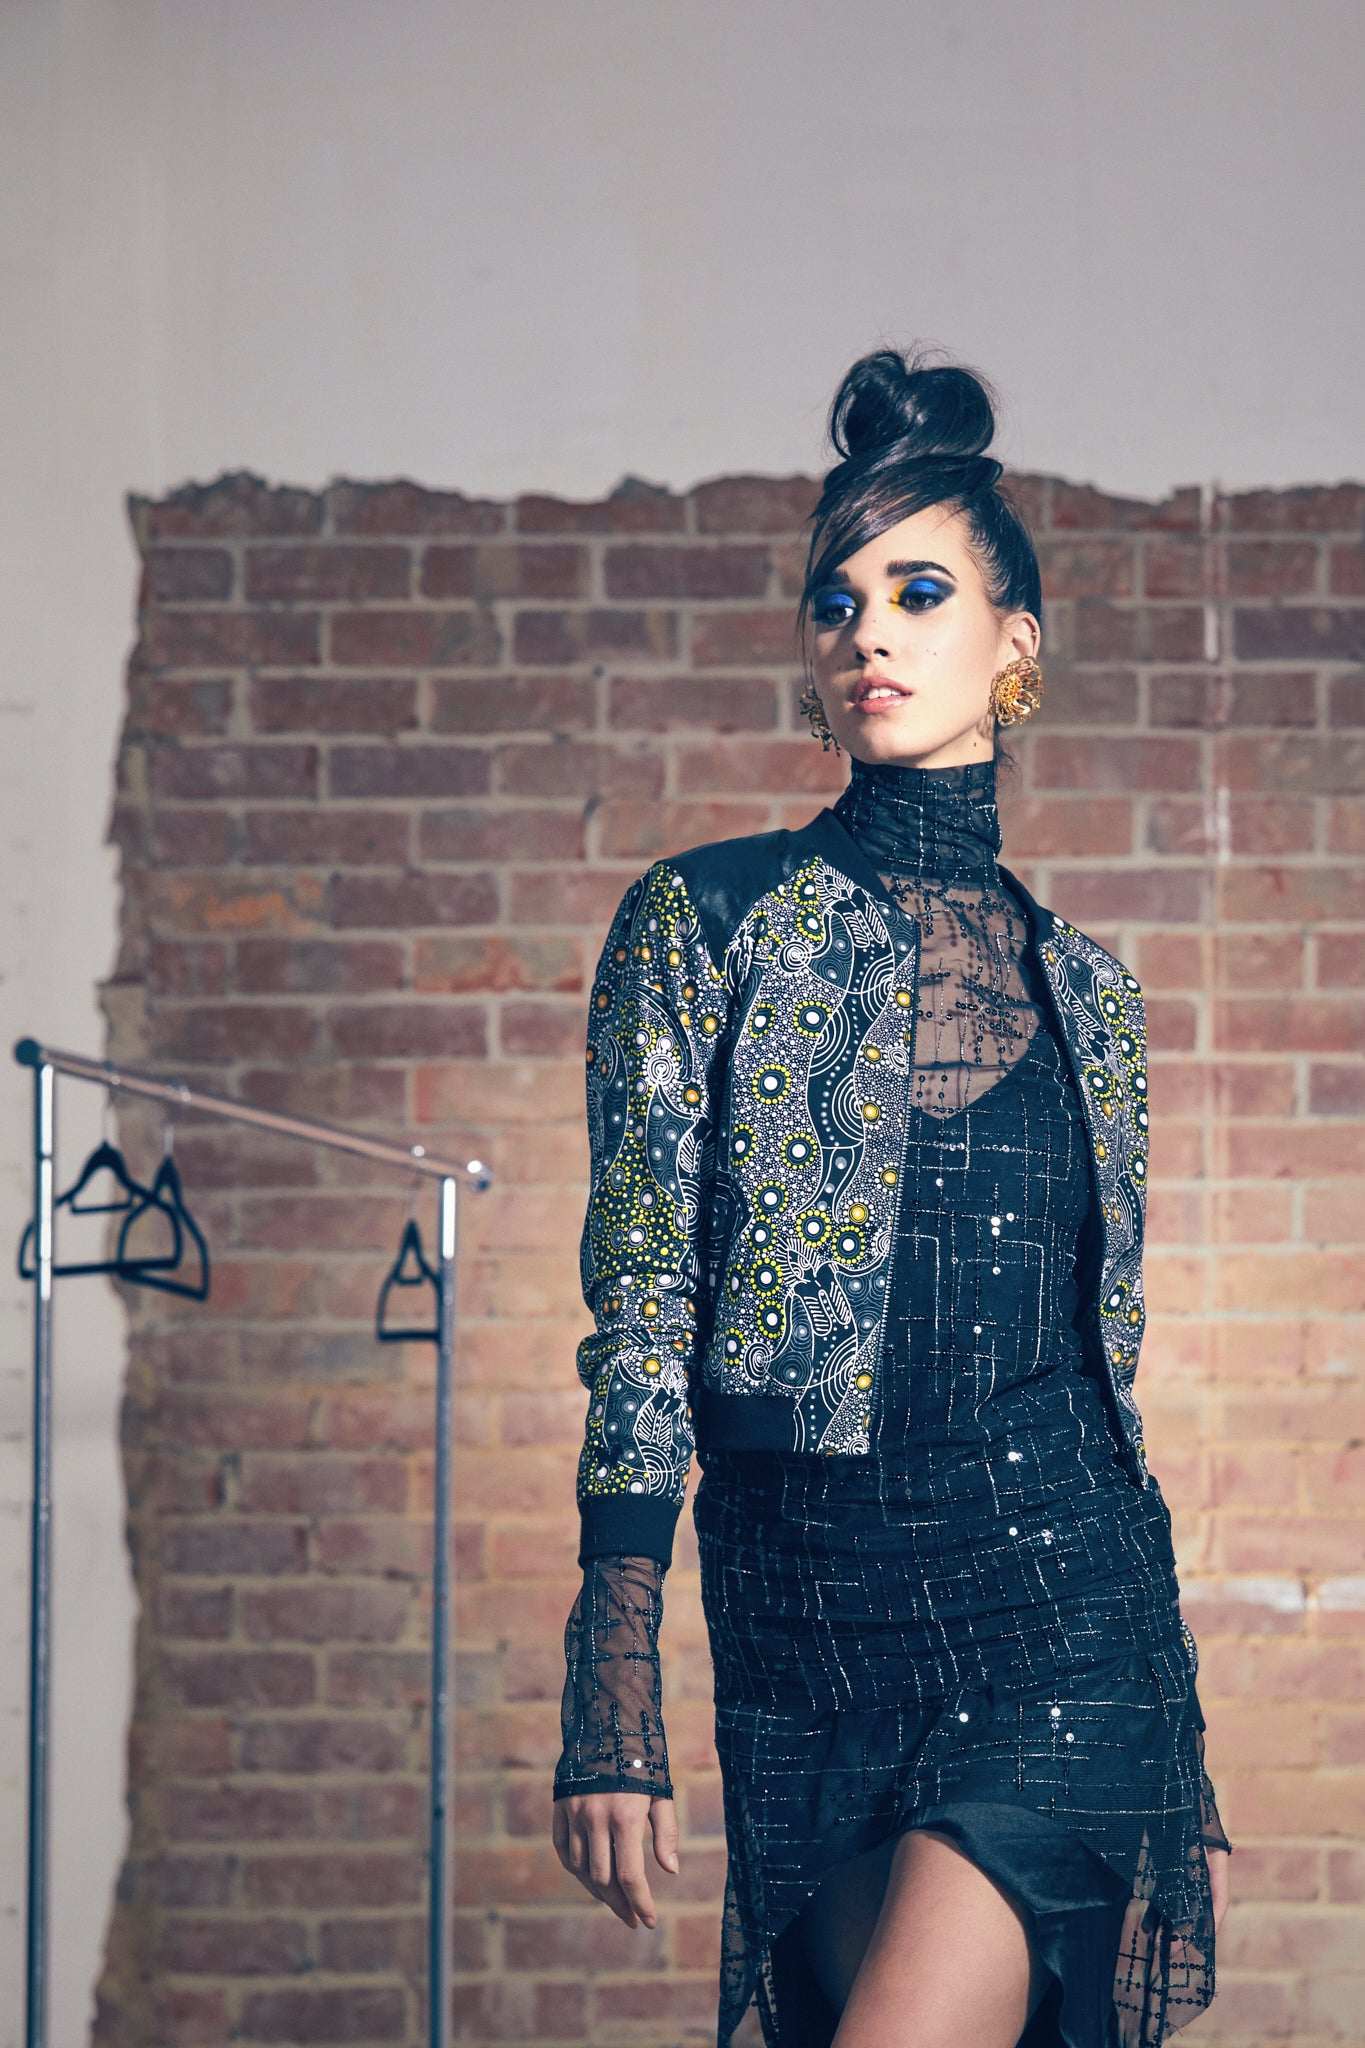 Model wears sequin and silk dress with Dancing Spirit bomber jacket